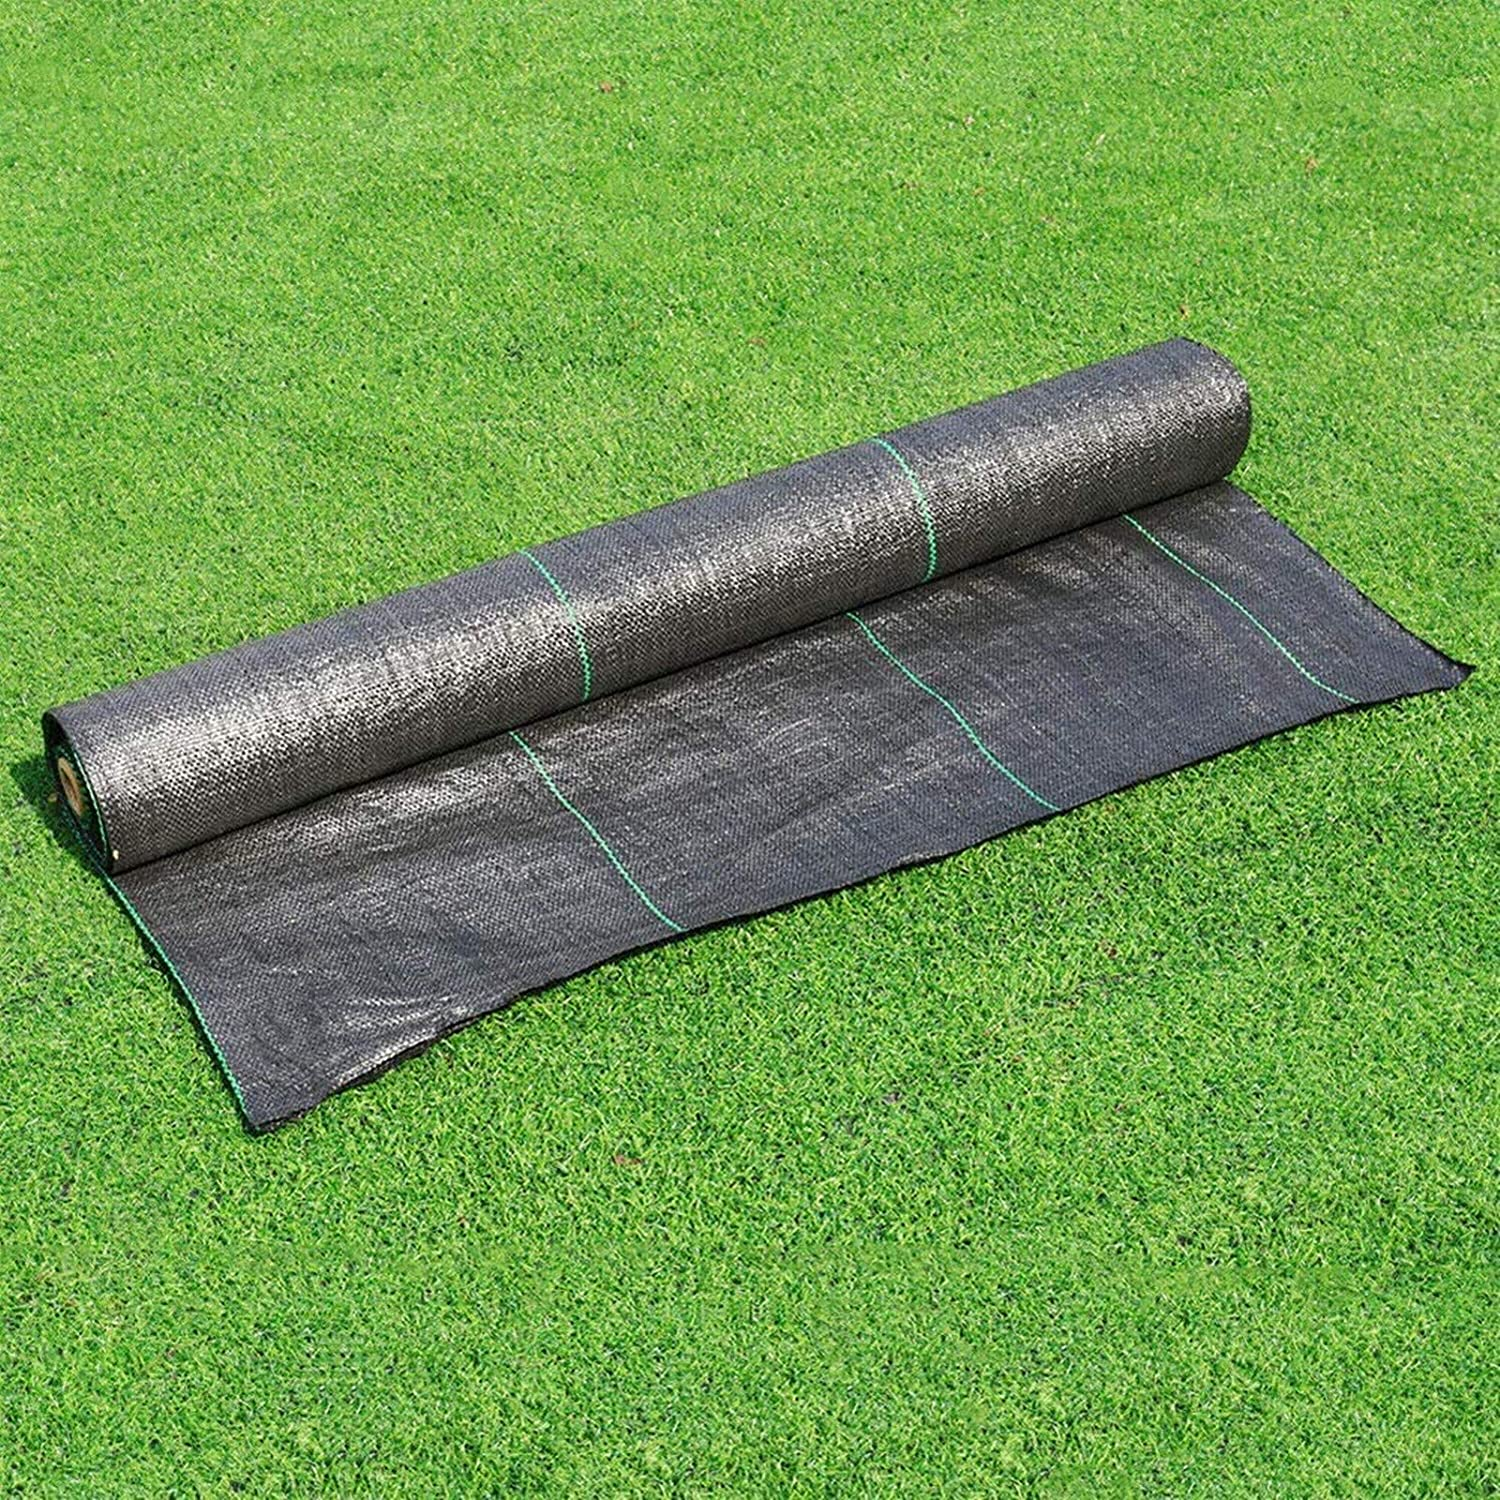 LITA Weed Barrier Control Fabric Ground Cover Membrane Garden Landscape Driveway Weed Block Nonwoven Heavy Duty 125gsm Black,3FT x 100FT